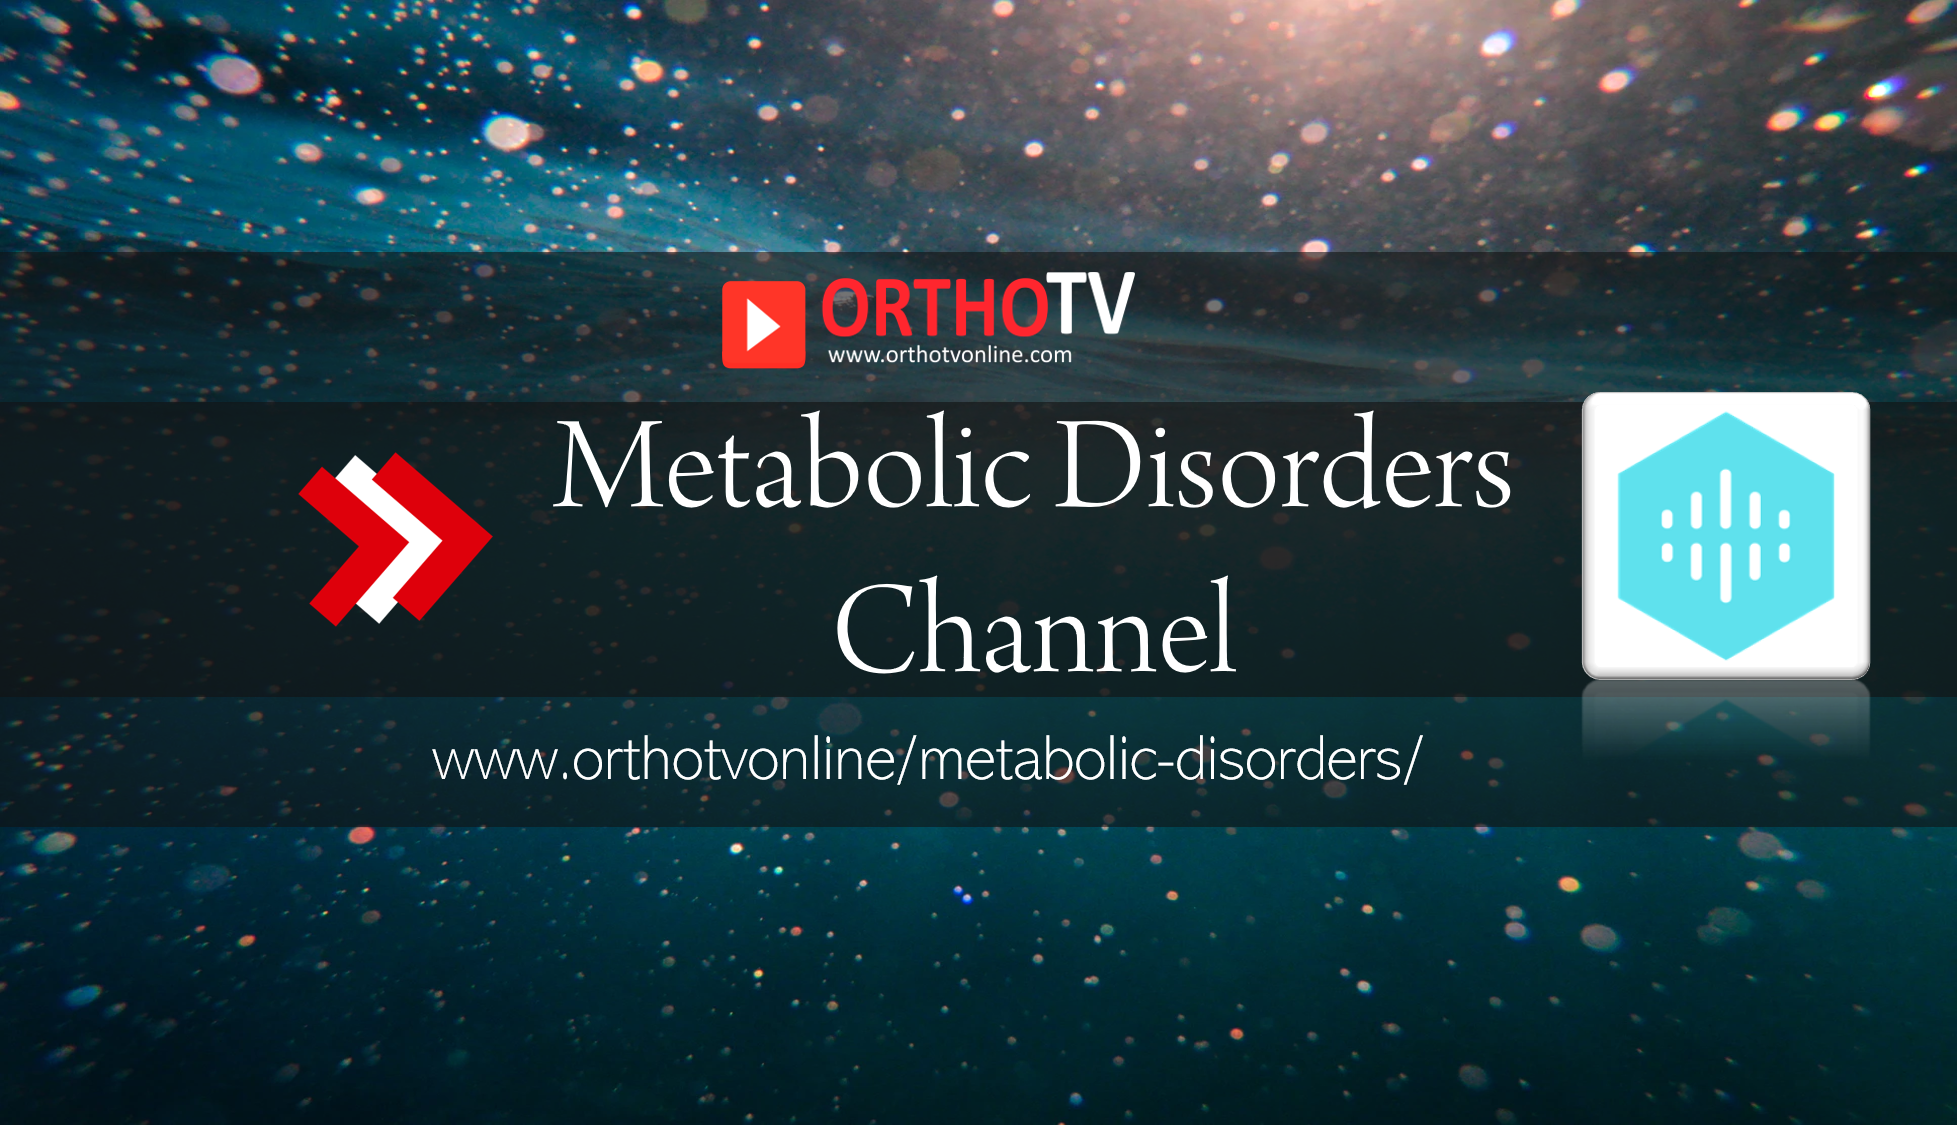 - OrthoTV Metabolic Disorders Channel - Metabolic Disorders